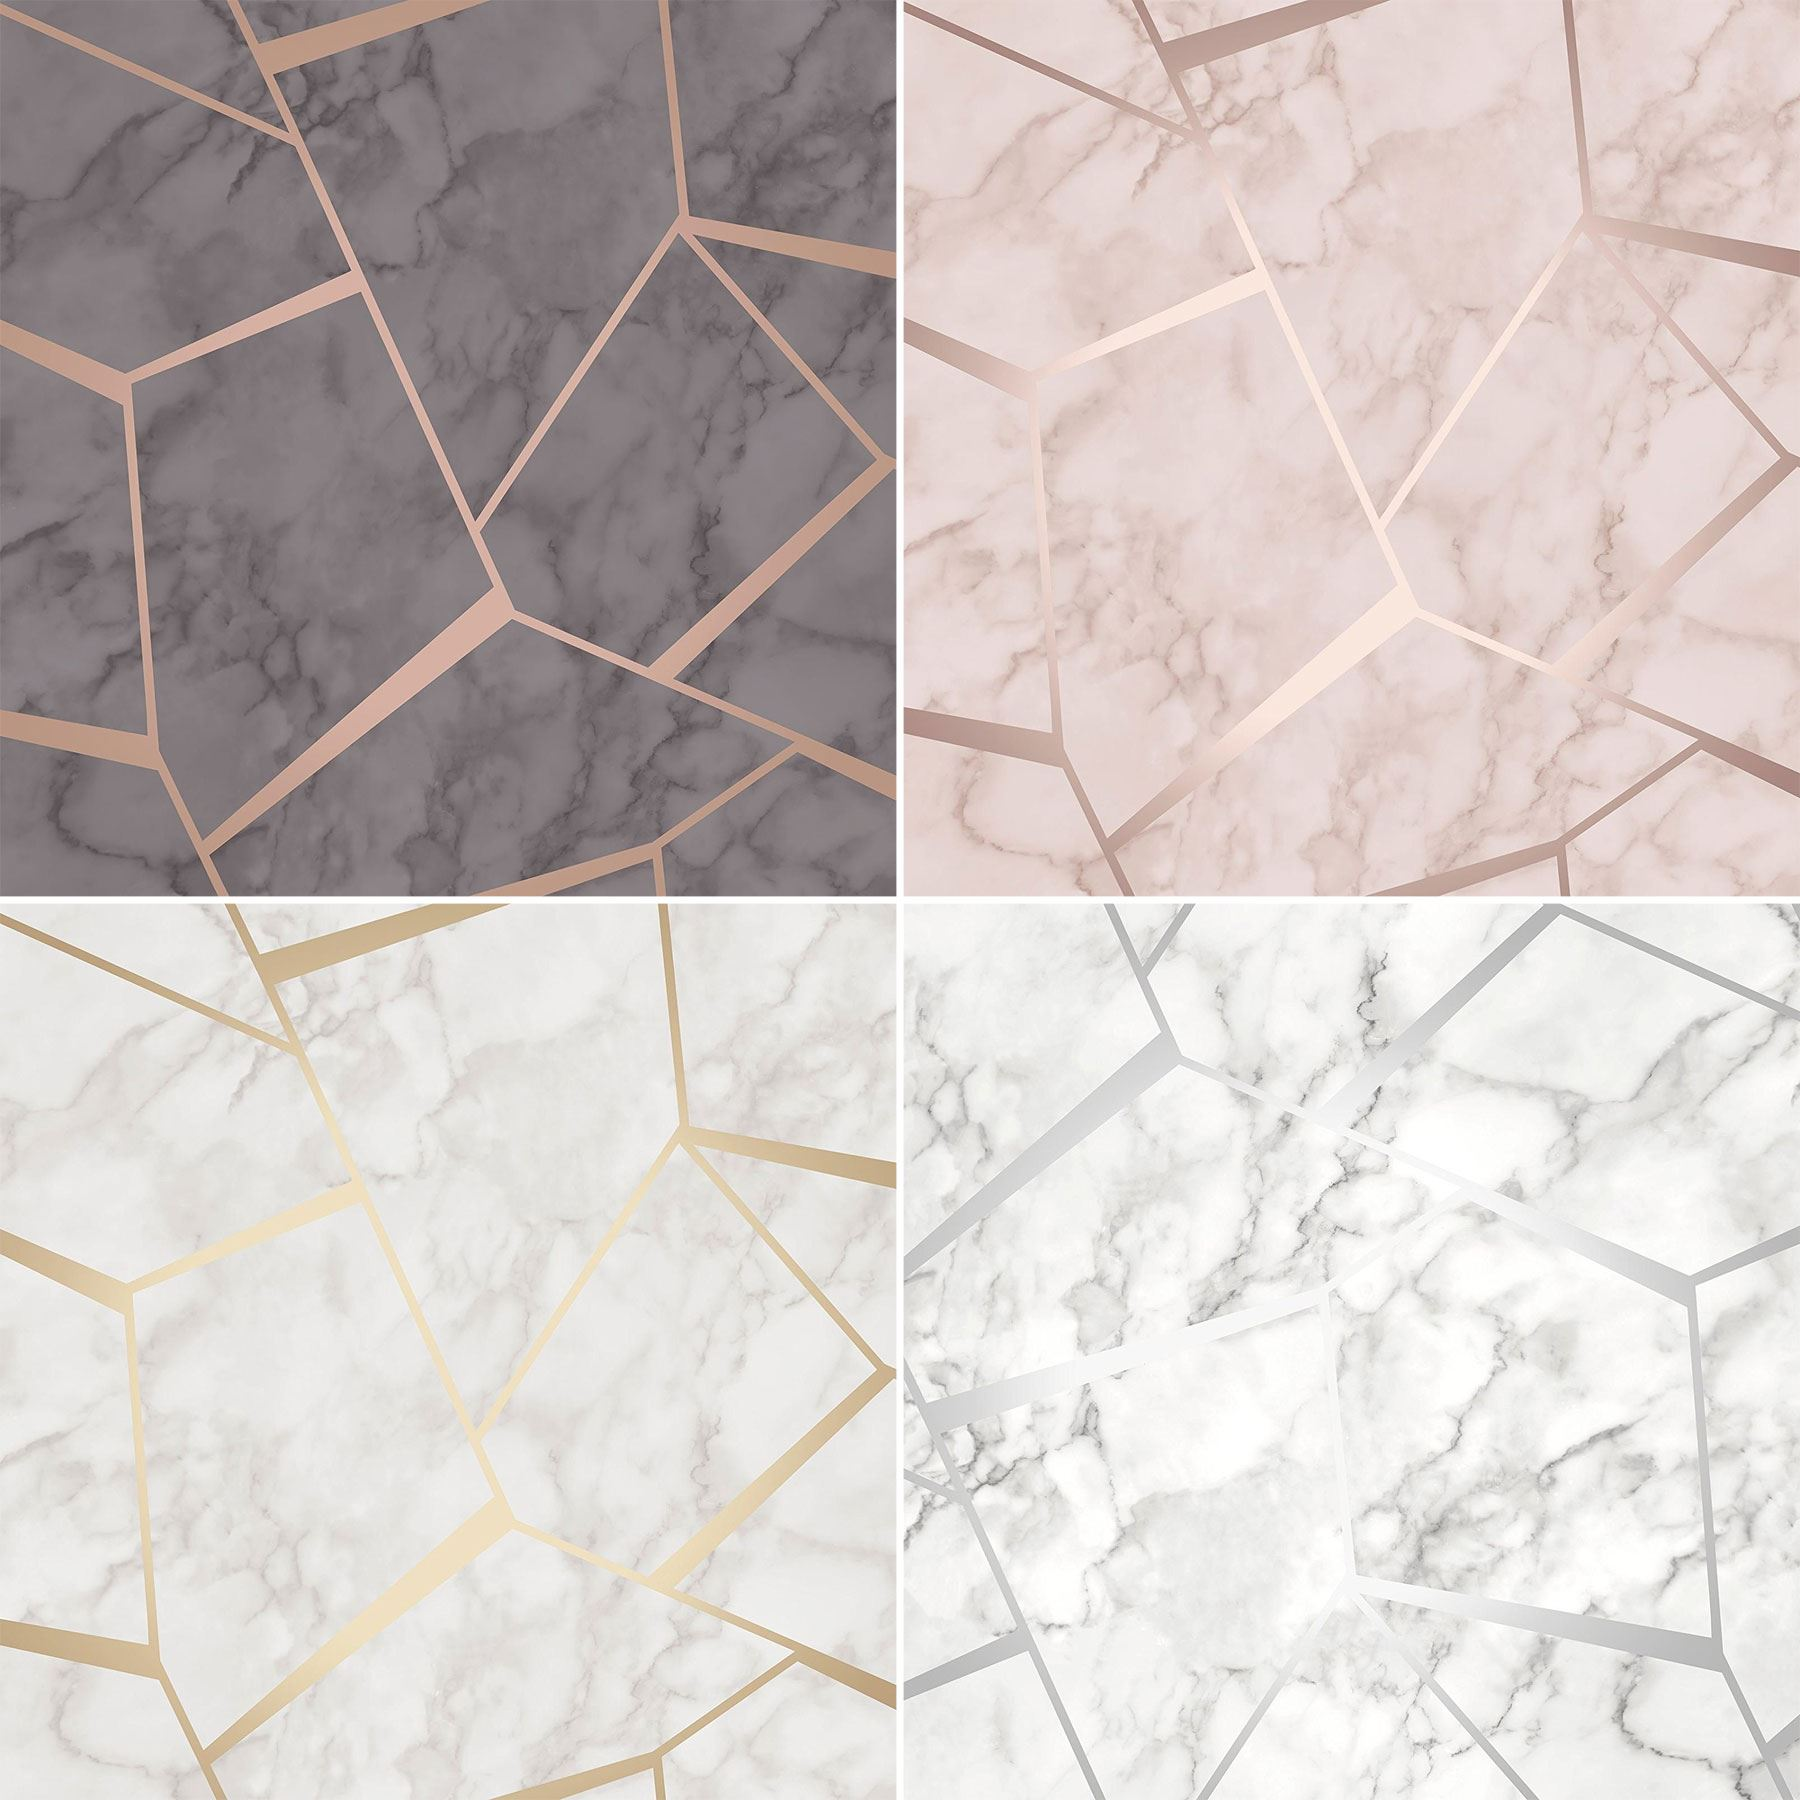 Rose Gold Marble Metallic 3066742 Hd Wallpaper Backgrounds Download